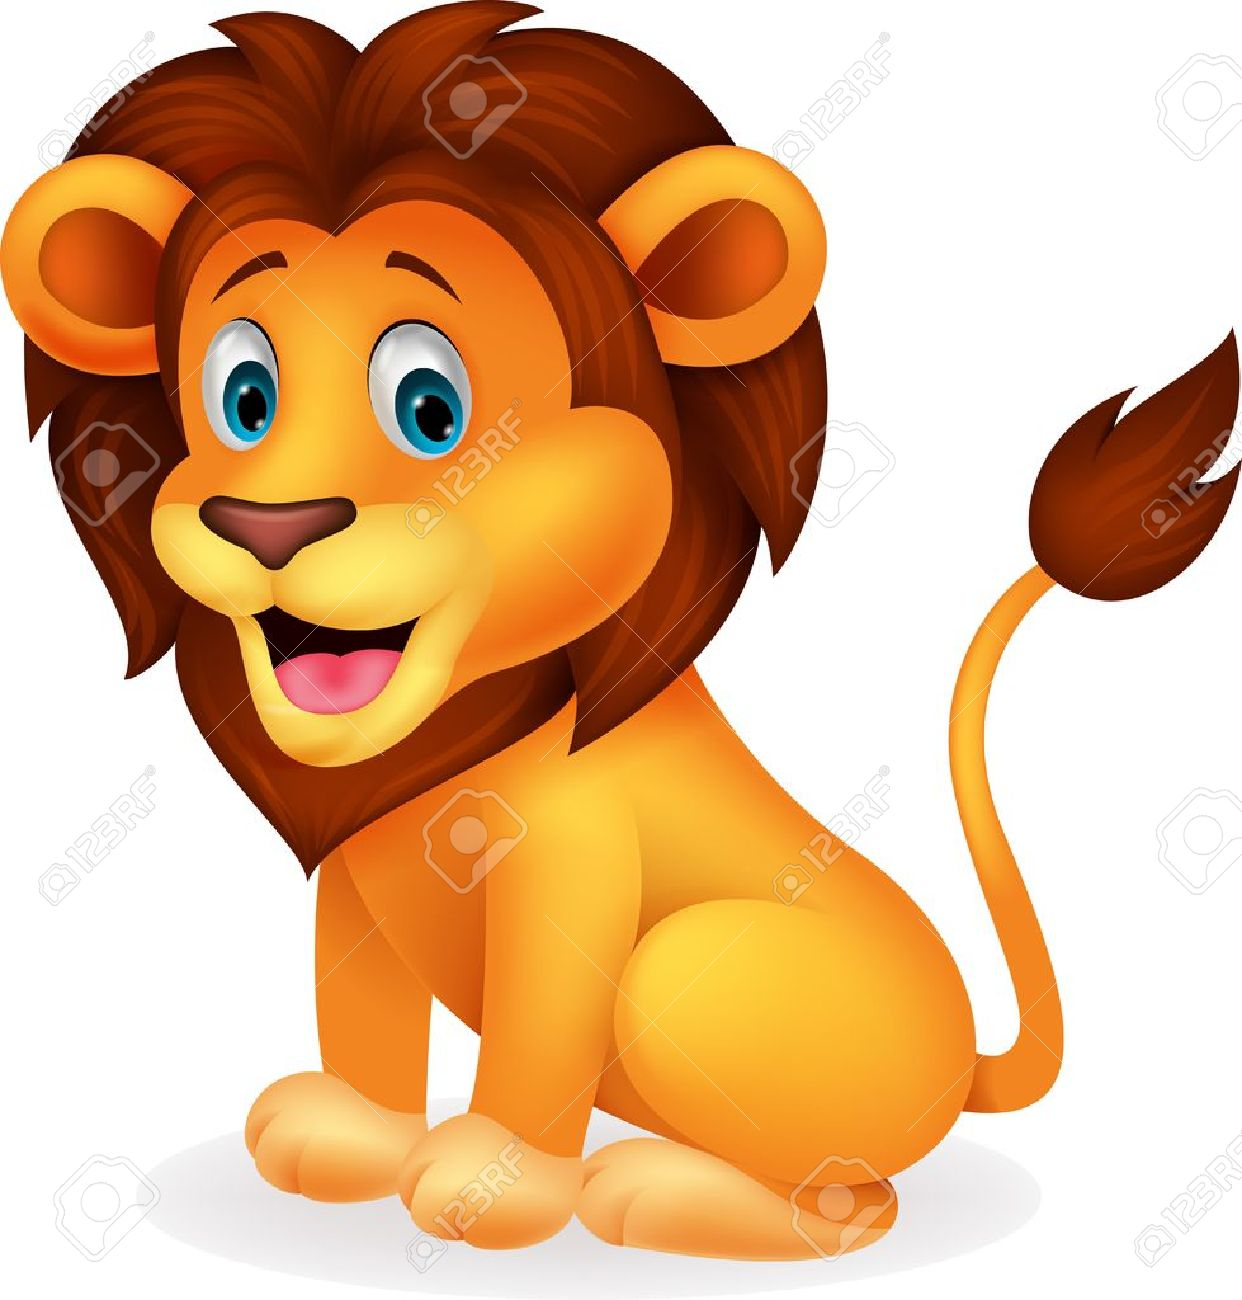 Lion Clipart Stock Photos Images. Royalty Free Lion Clipart Images.